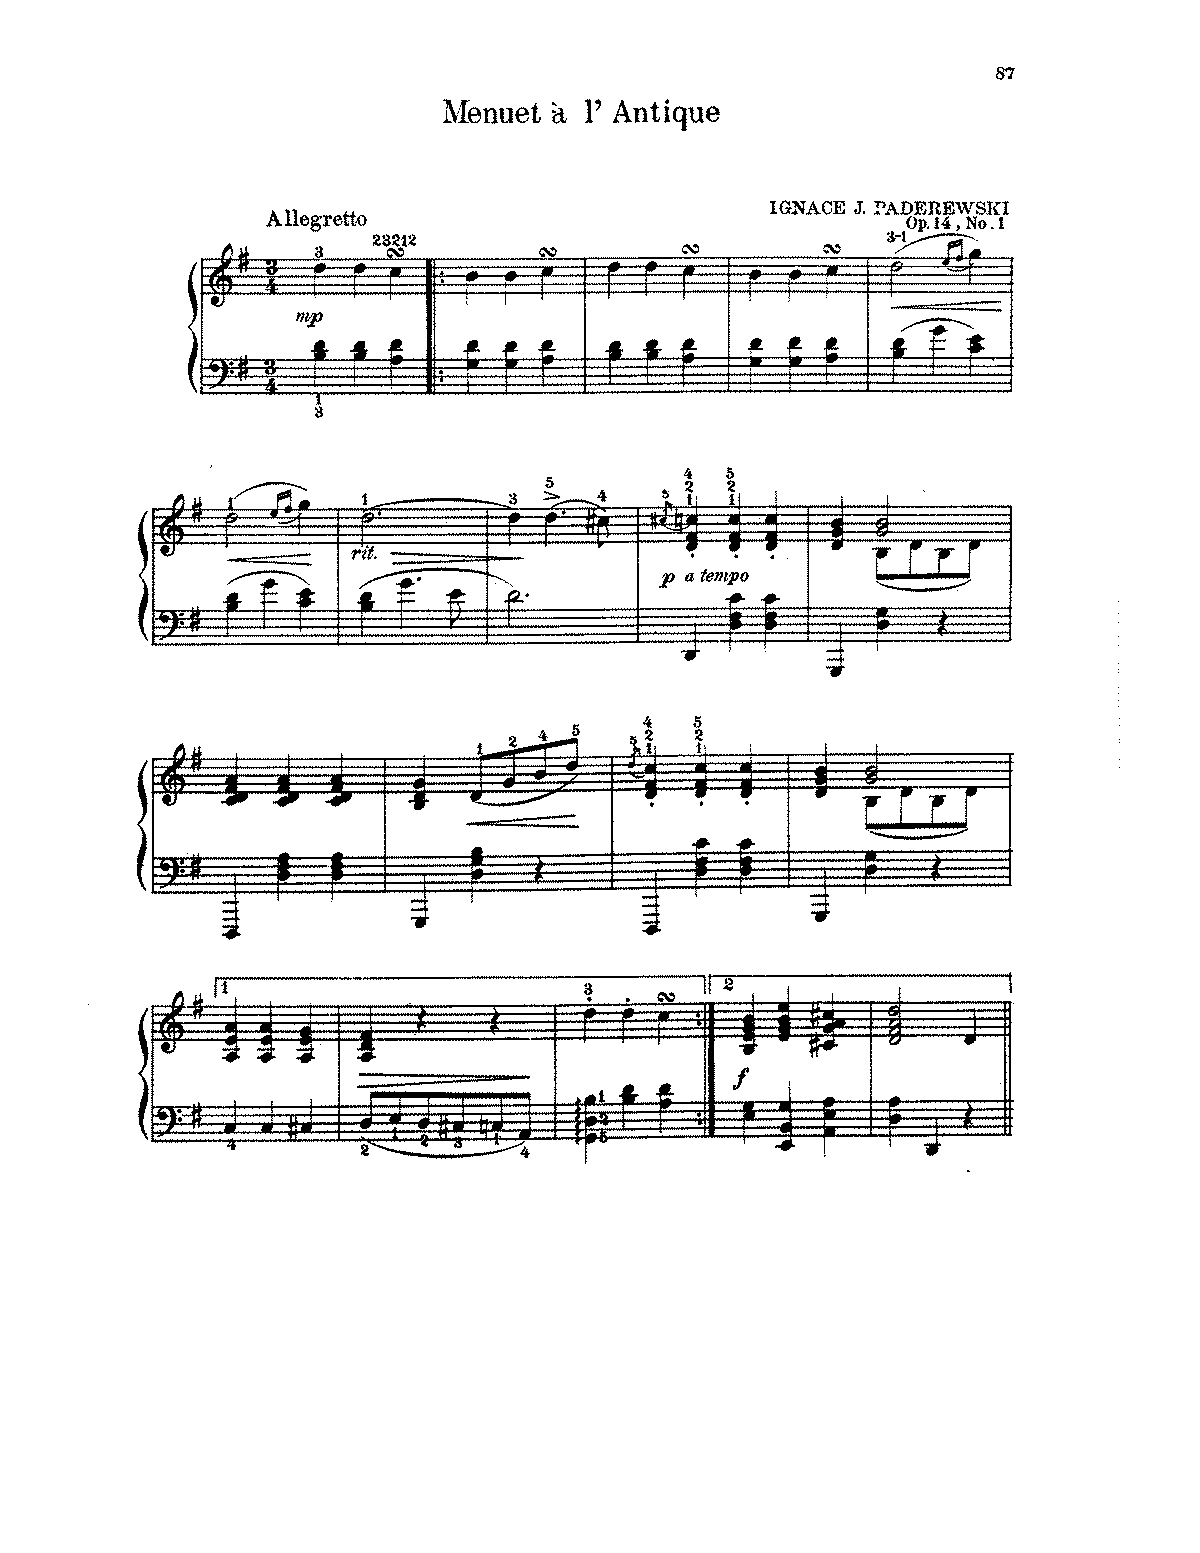 Paderewski - Minuet in G a la Antique.pdf